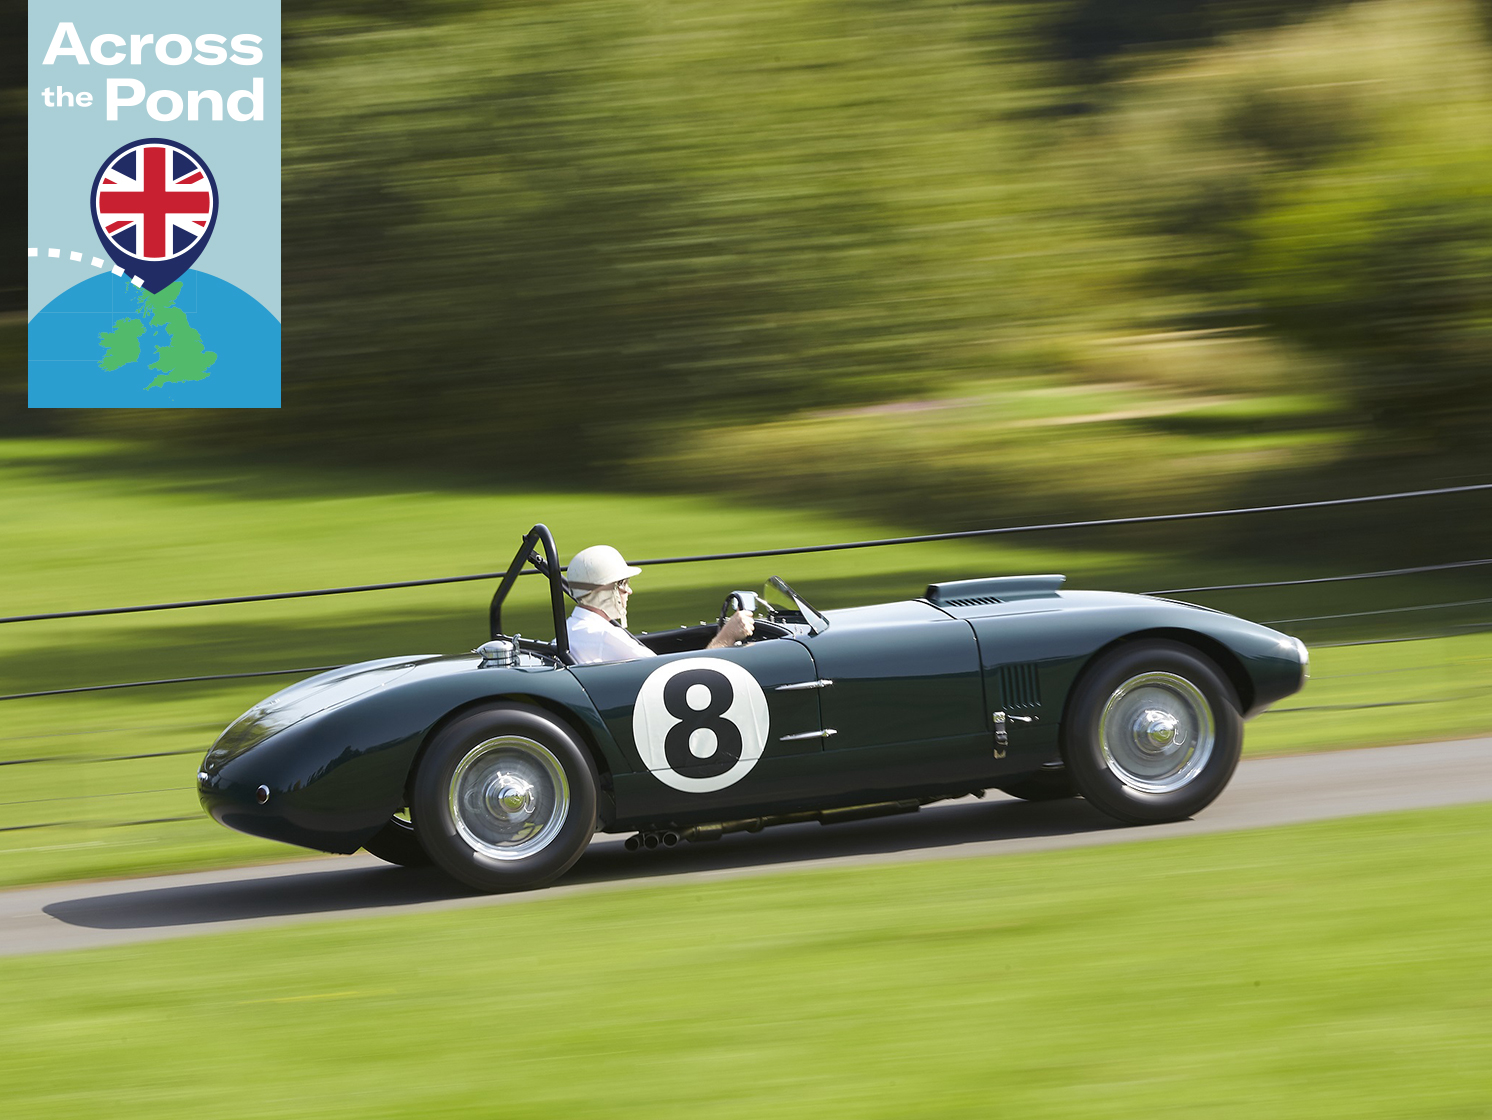 Allard JR continuation car side profile hagerty uk article lead